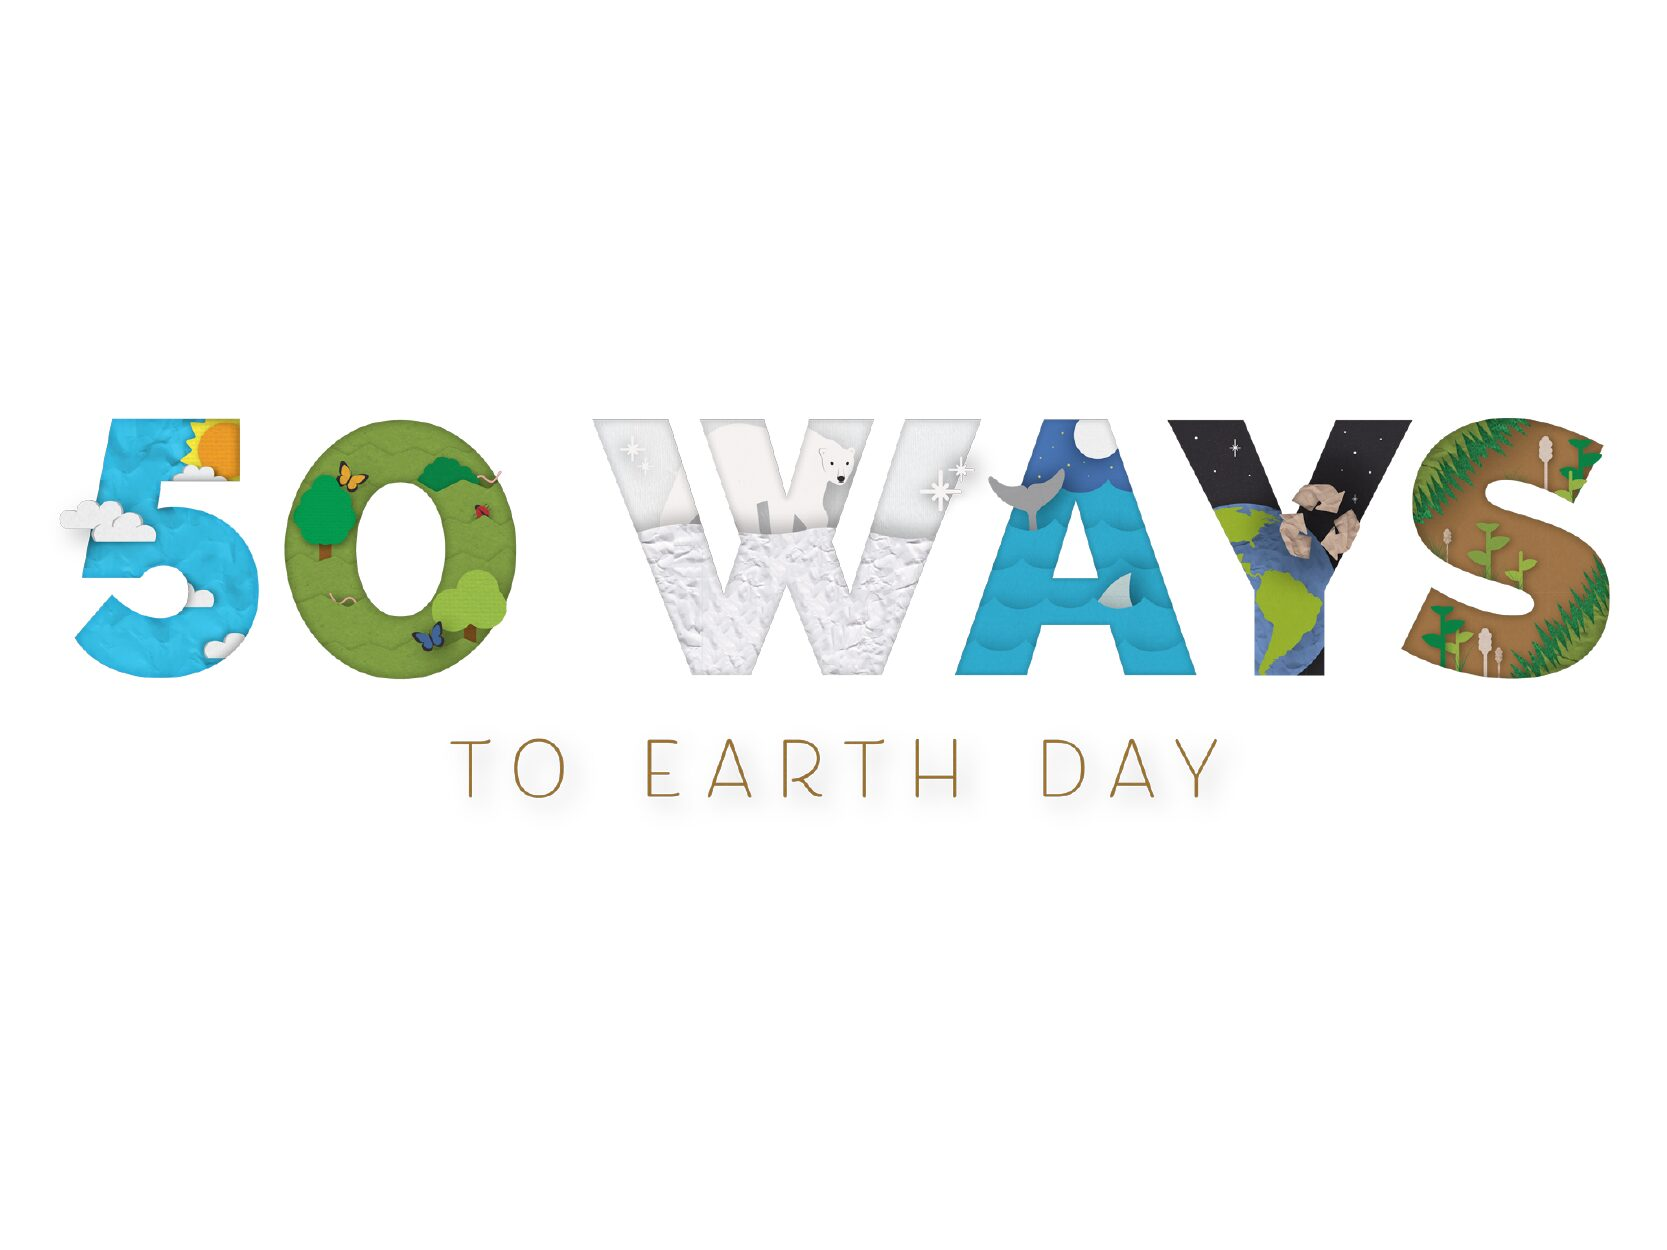 Discovery Education Invites Educators, Students, and Families Worldwide to Virtually Celebrate Earth Day's 50th Anniversary